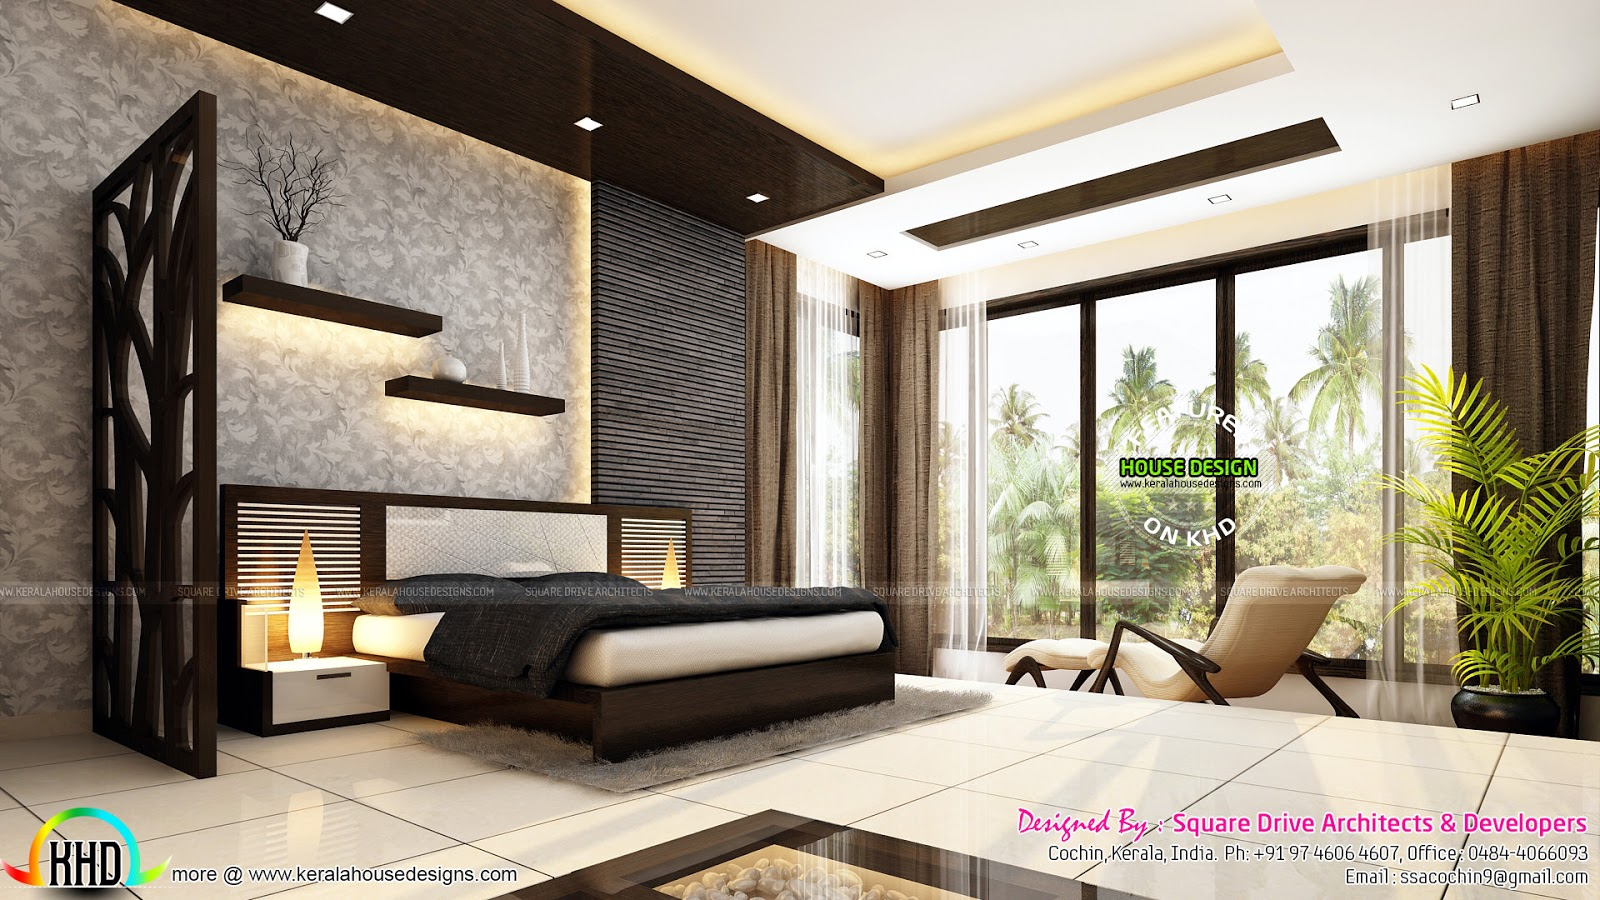 Very beautiful modern interior designs kerala home for Modern interior designs for bedrooms